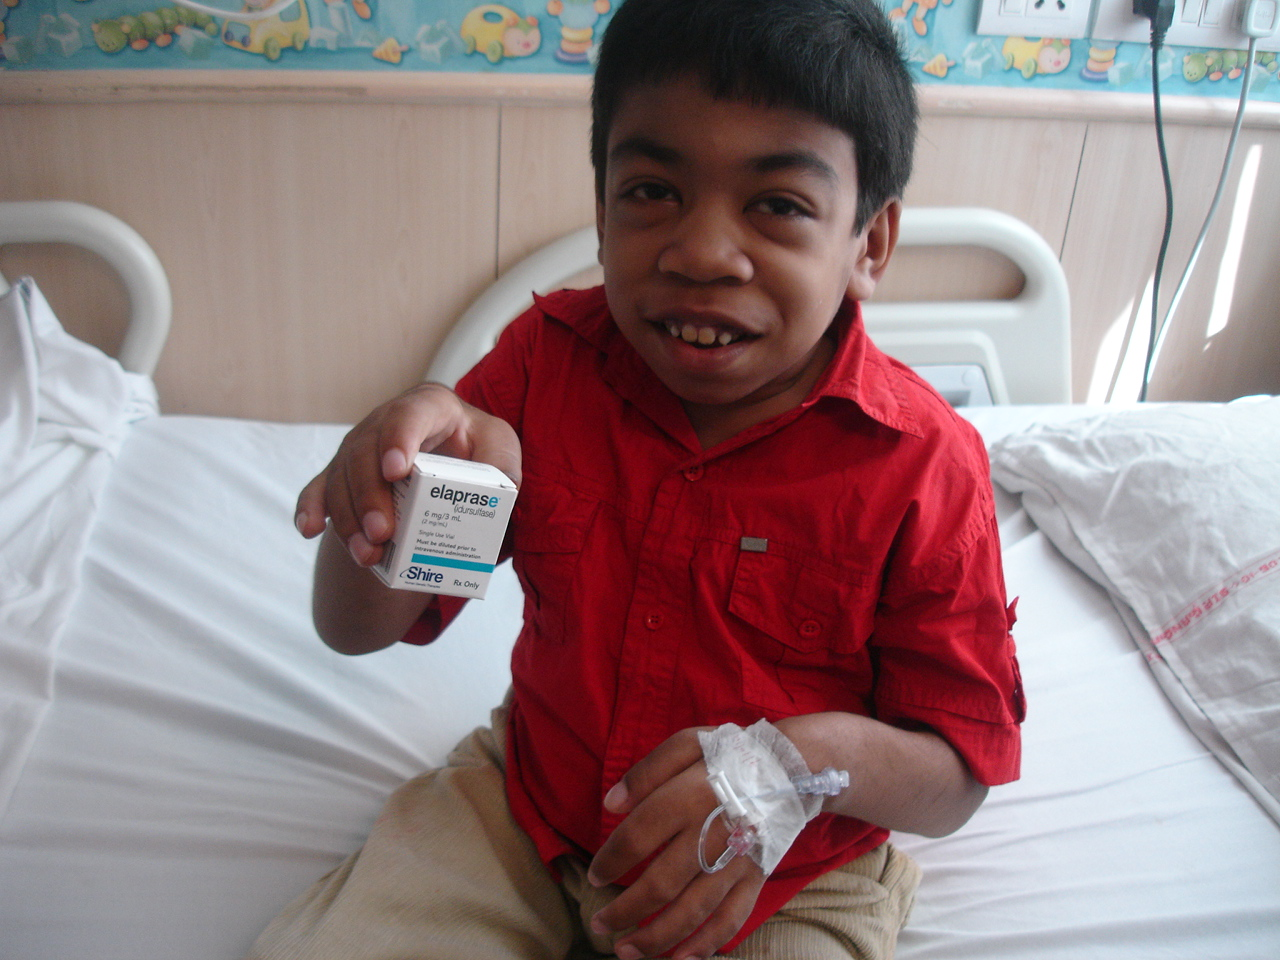 Arian with his Elaprase treatment for MPS II/Hunter syndrome. Courtesy photo.